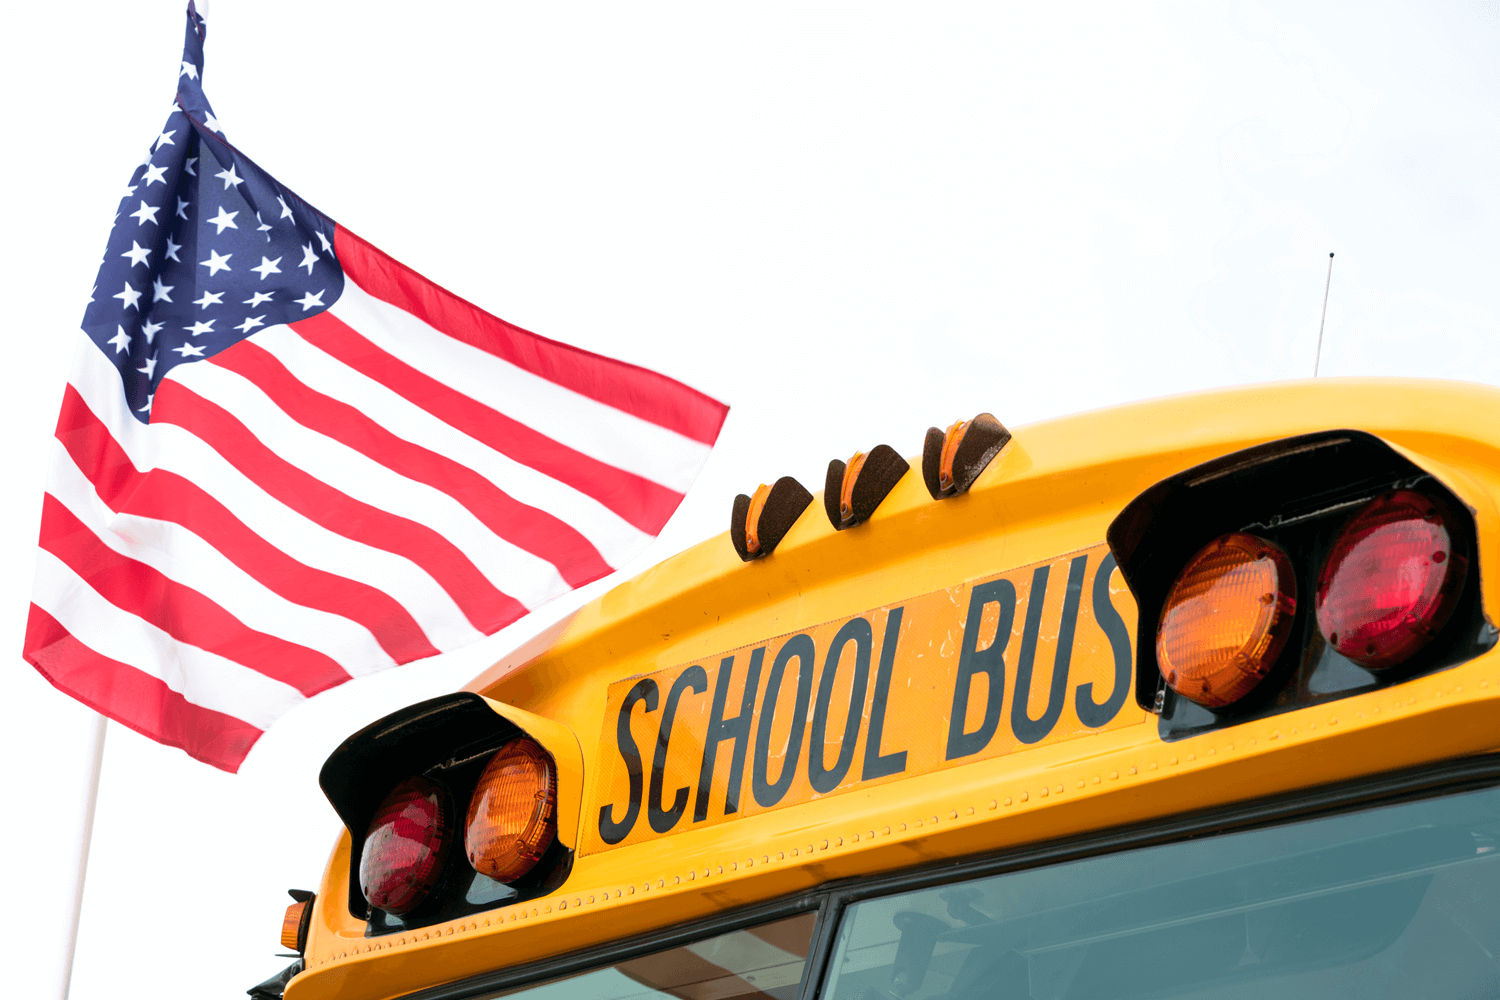 Close up of the top of a school bus with an American flag in the background